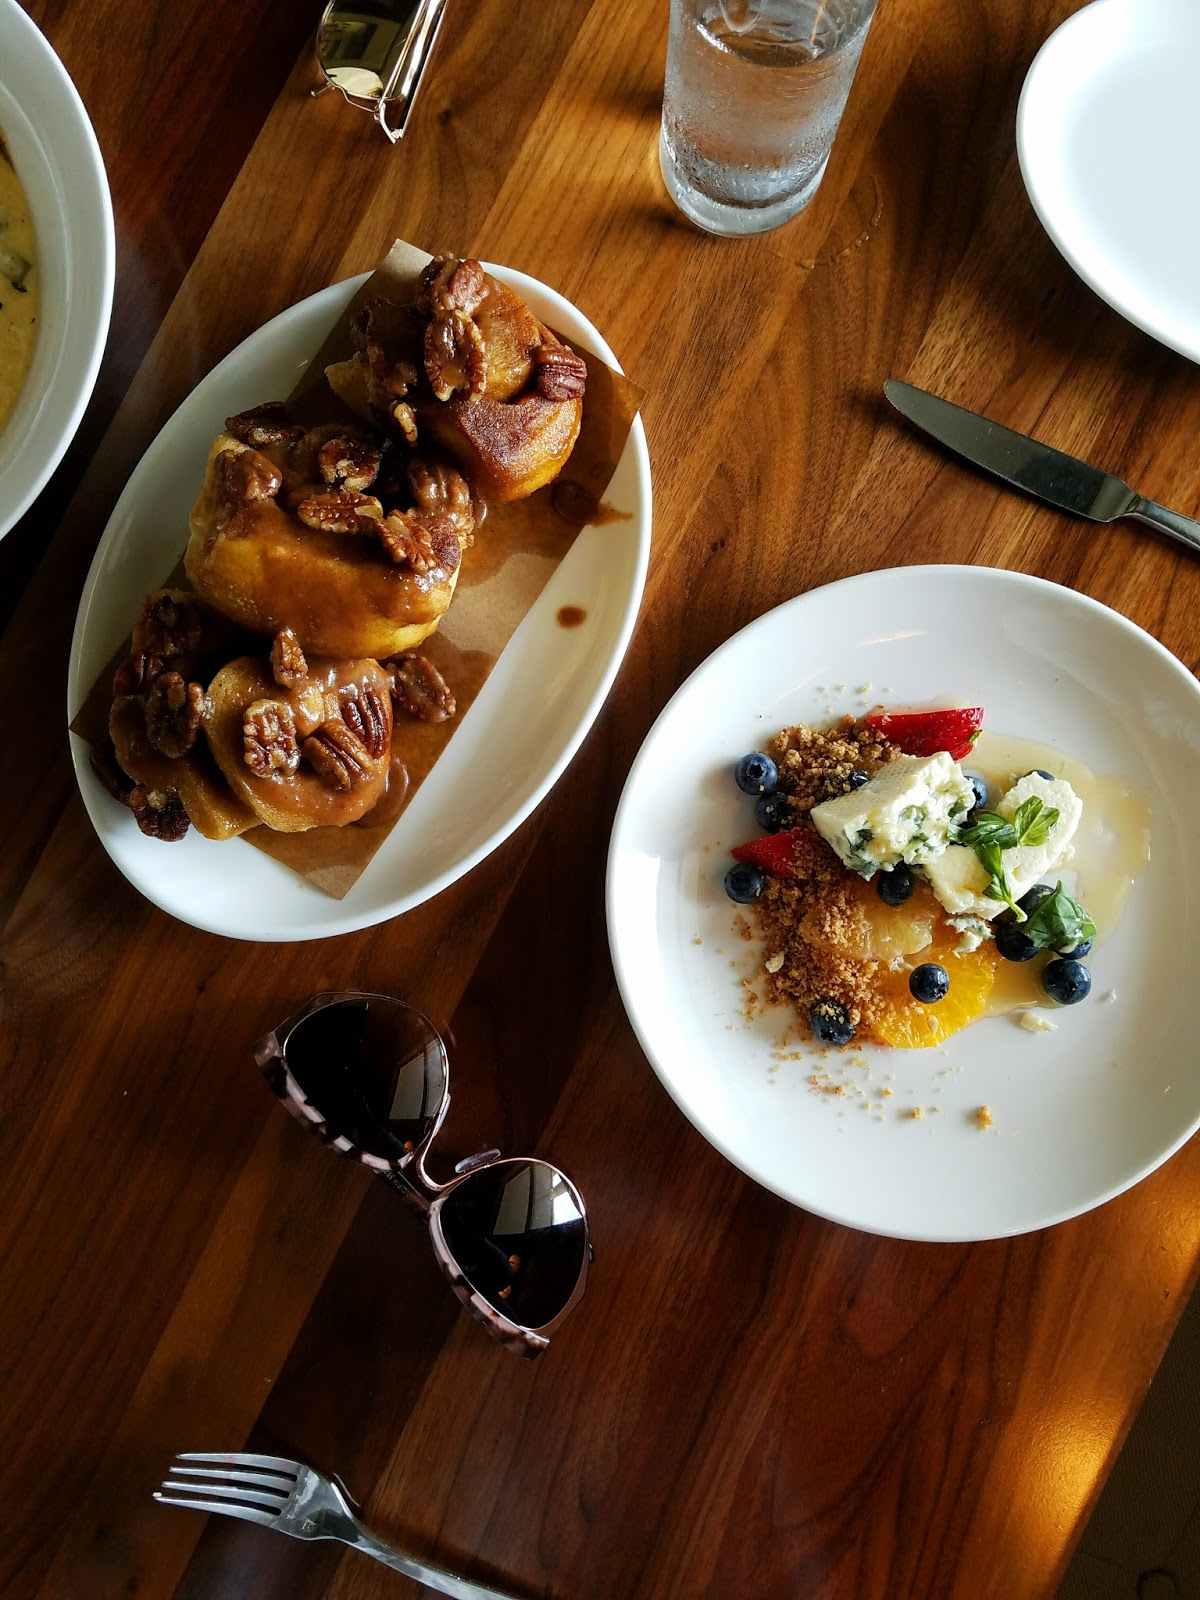 Sticky Buns and Fruit and Cheese Plate at Hotel Ella